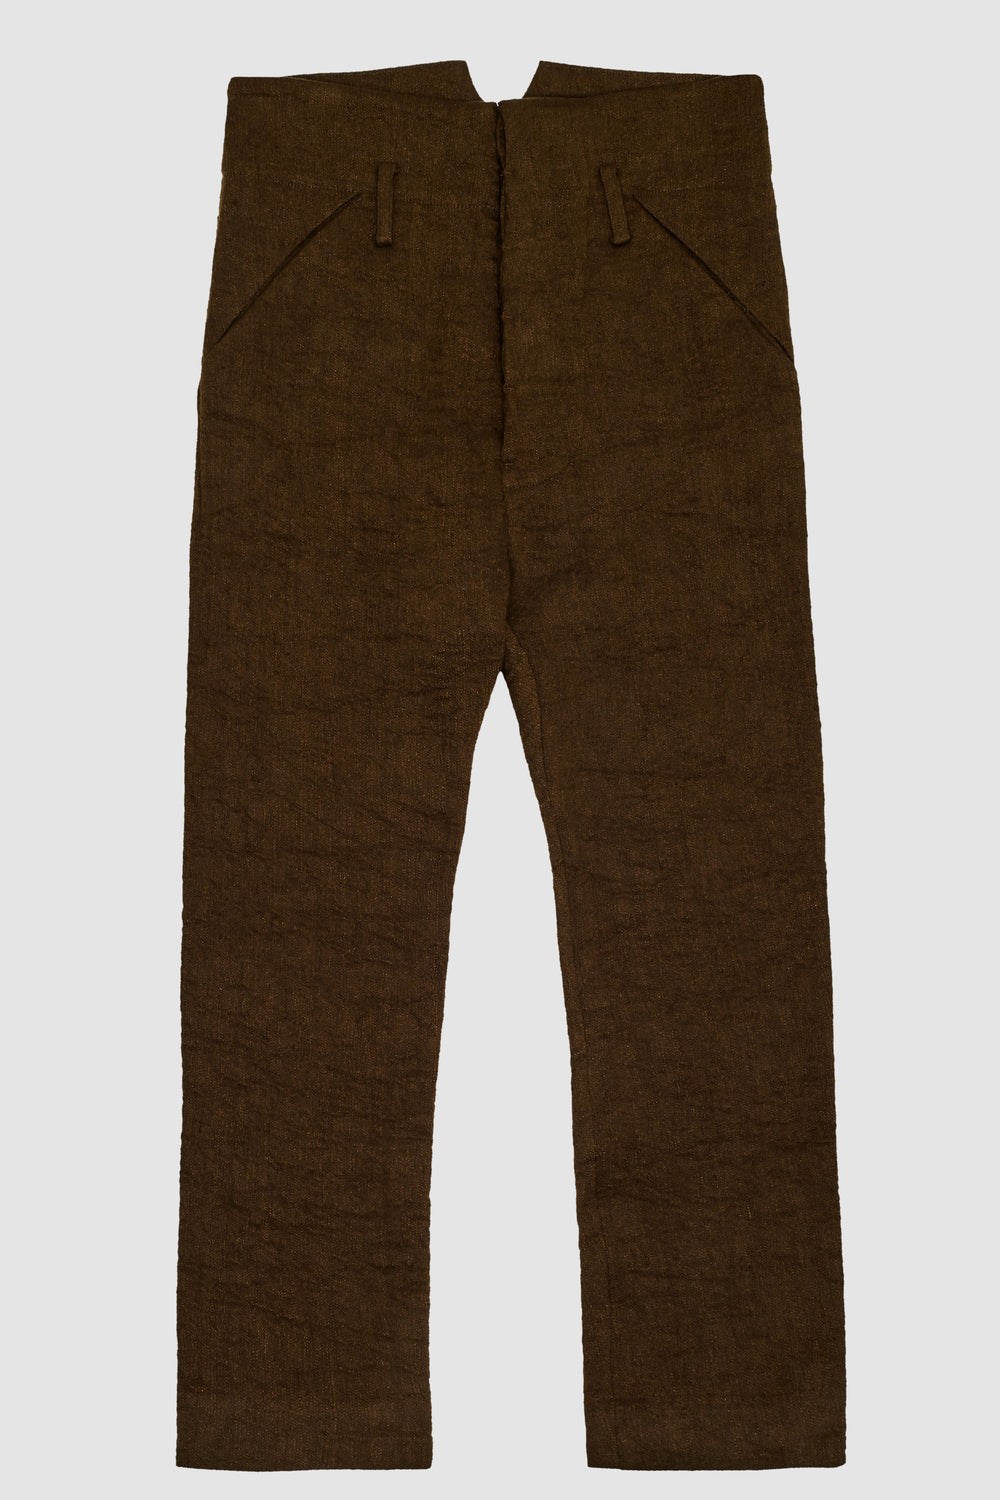 Low Crotch Pants Brown